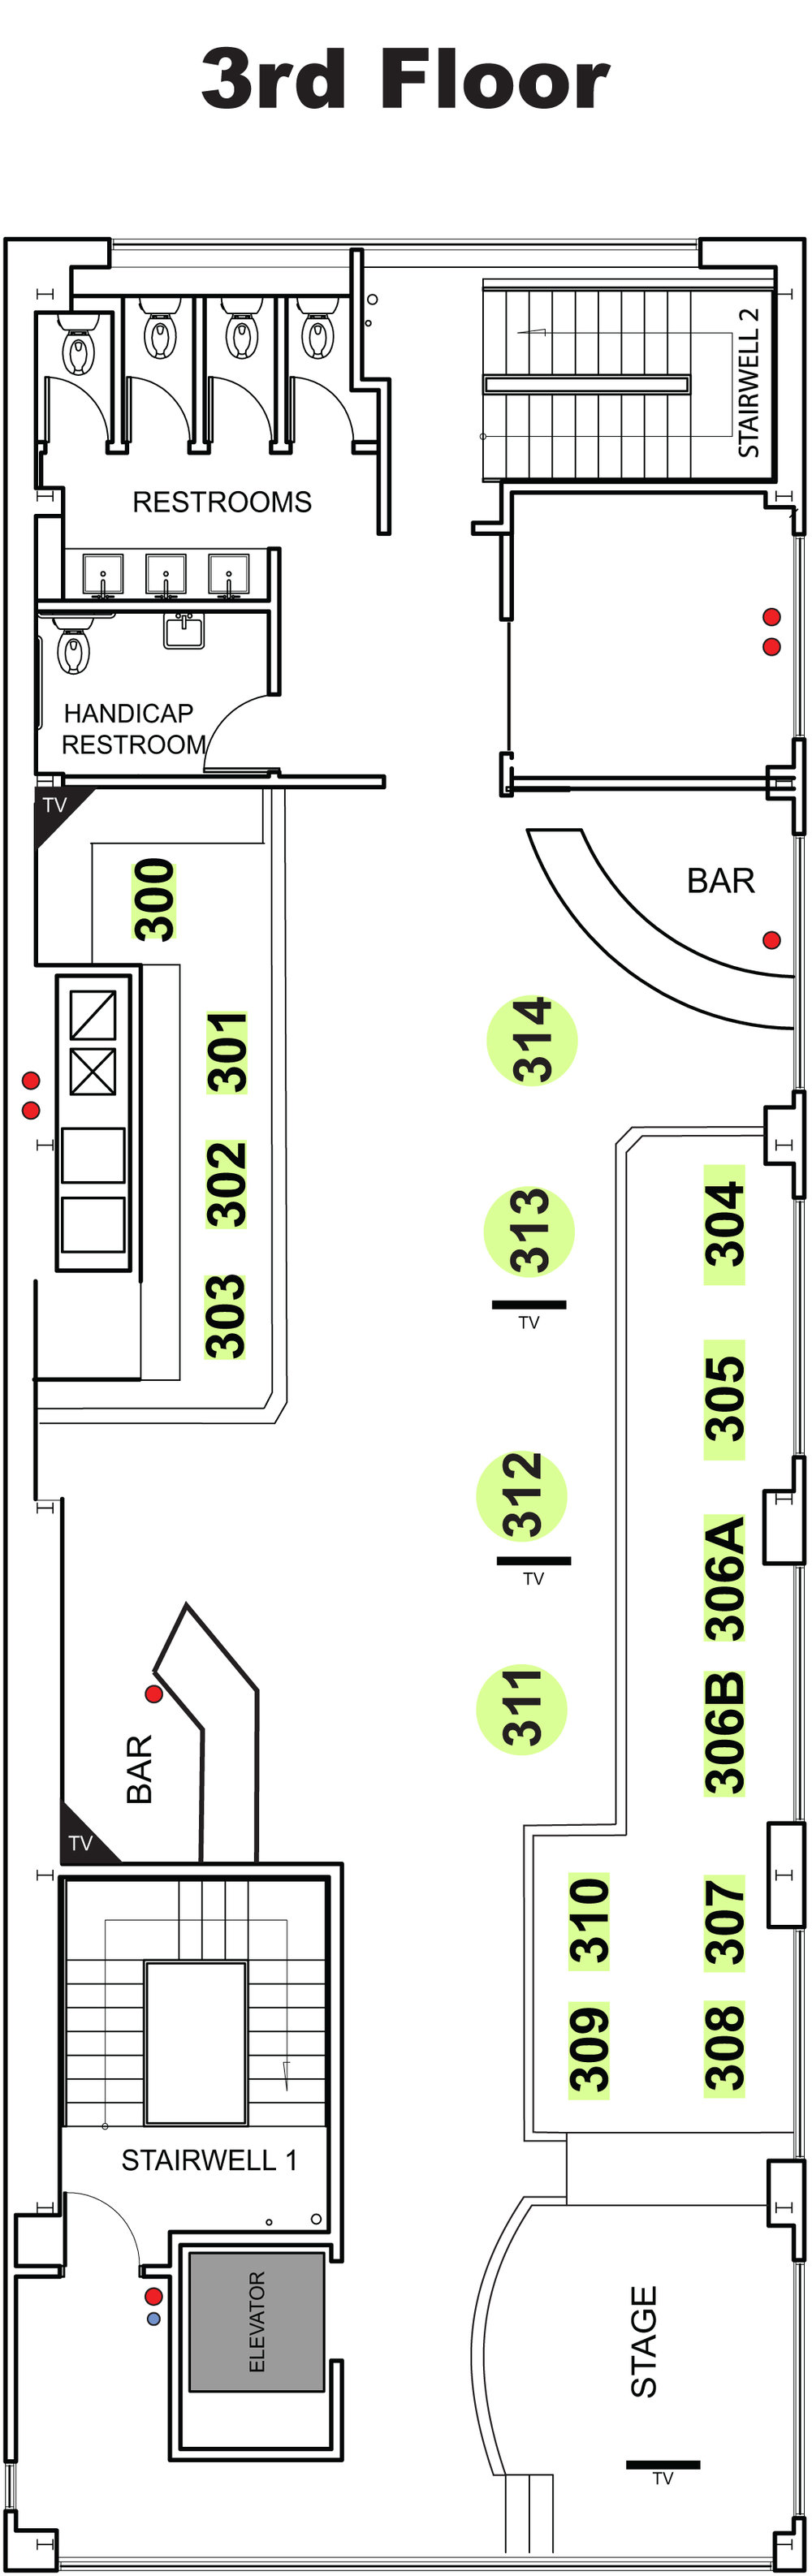 Dinner Floor Plan June 2018 v2-3.jpg